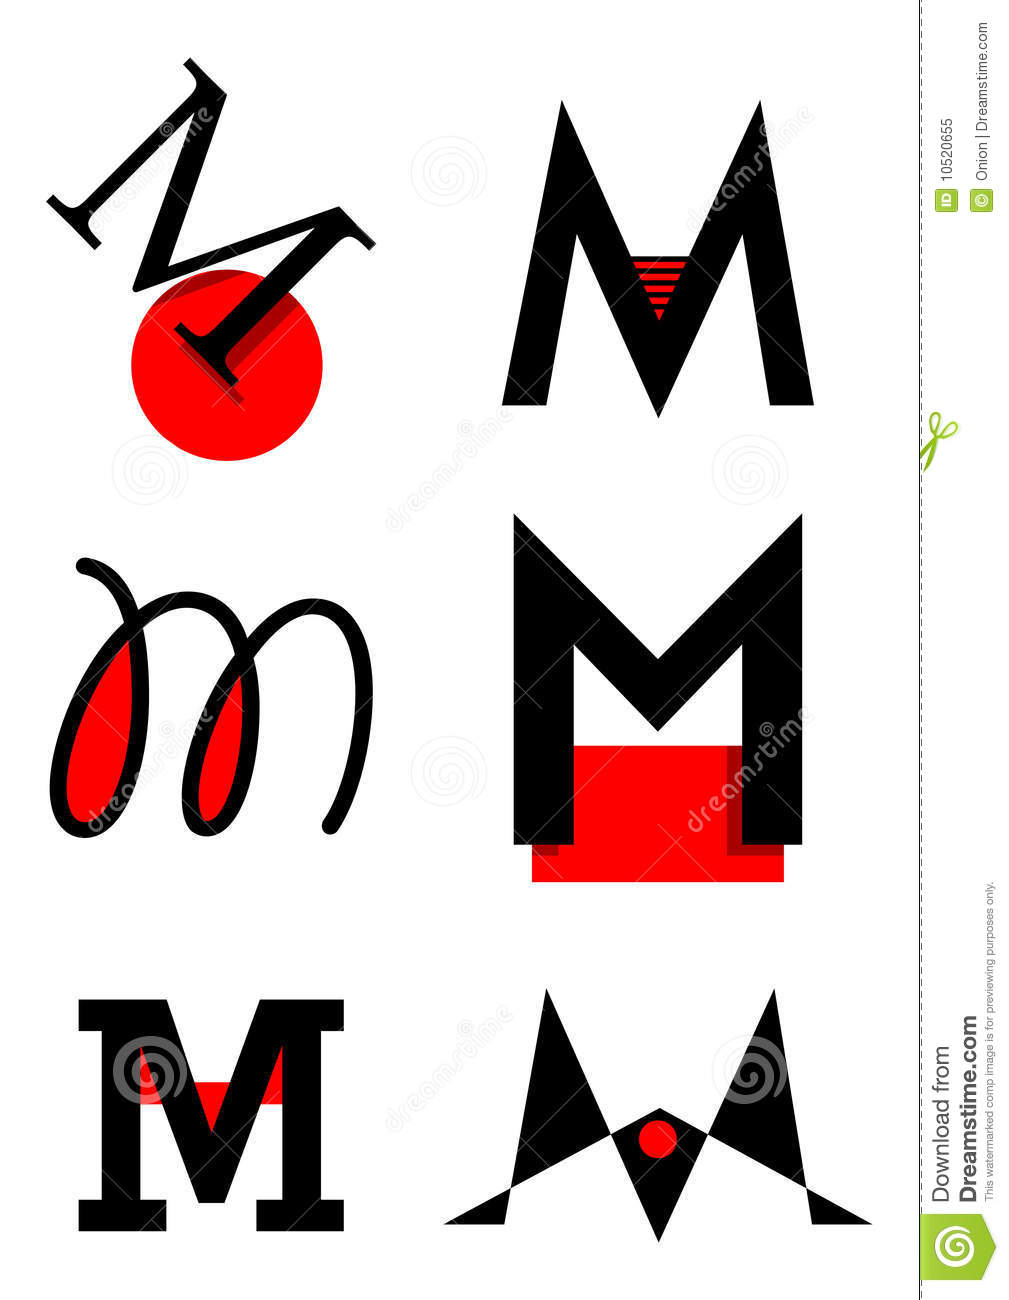 letter m logo royalty free stock photos image 22214578 vector alphabet m logos and icons stock vector image 182